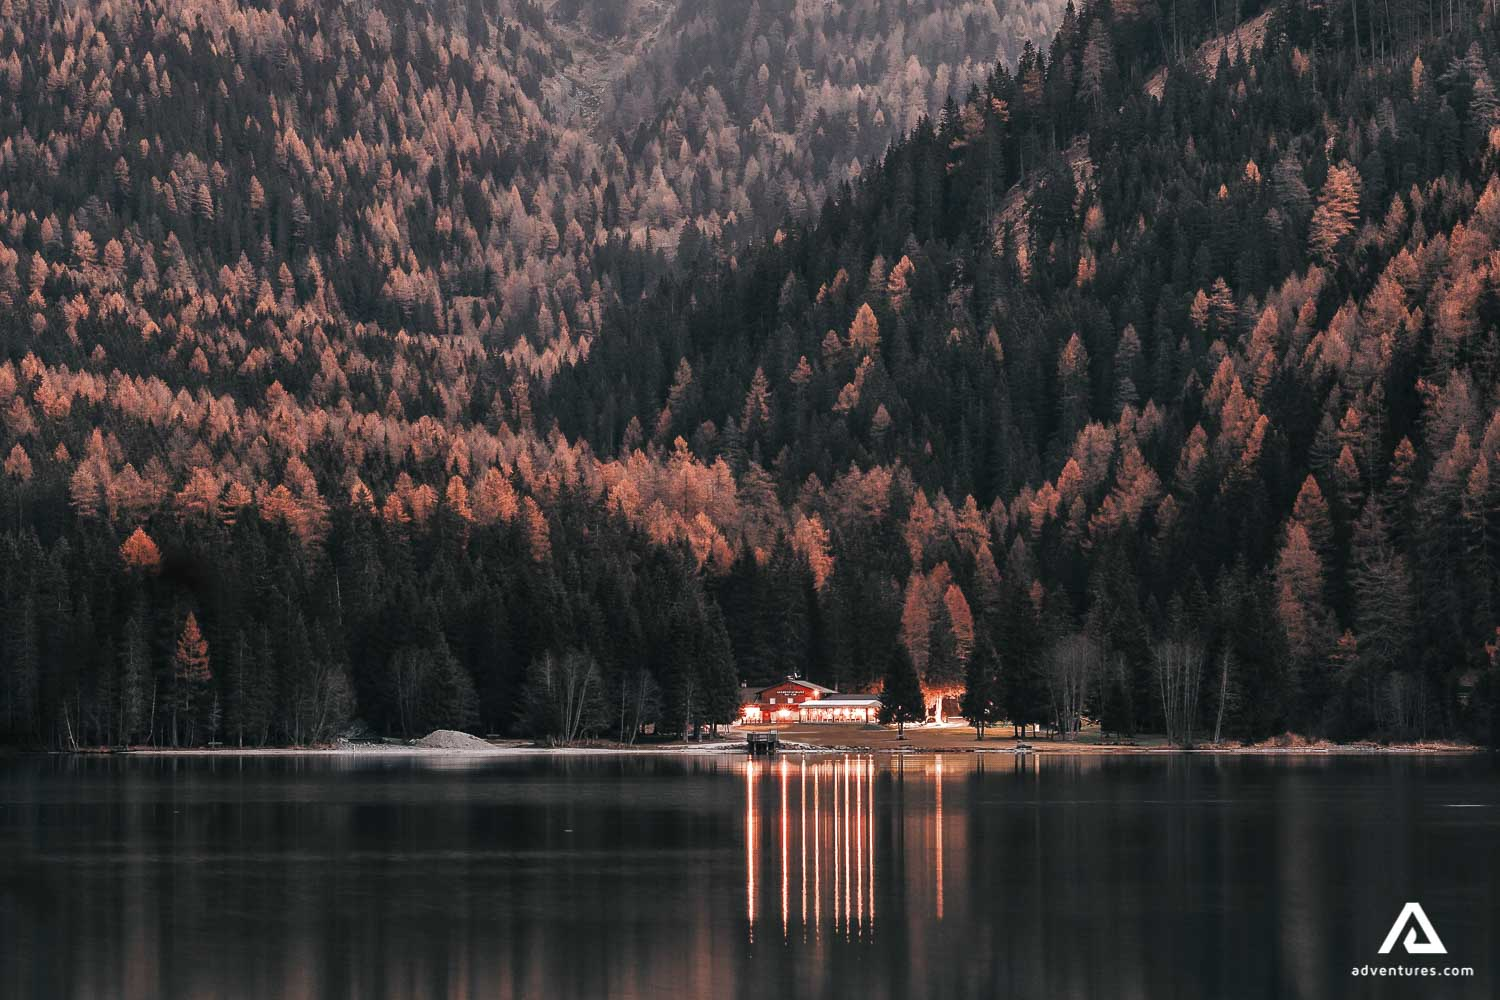 Lodge by the lake